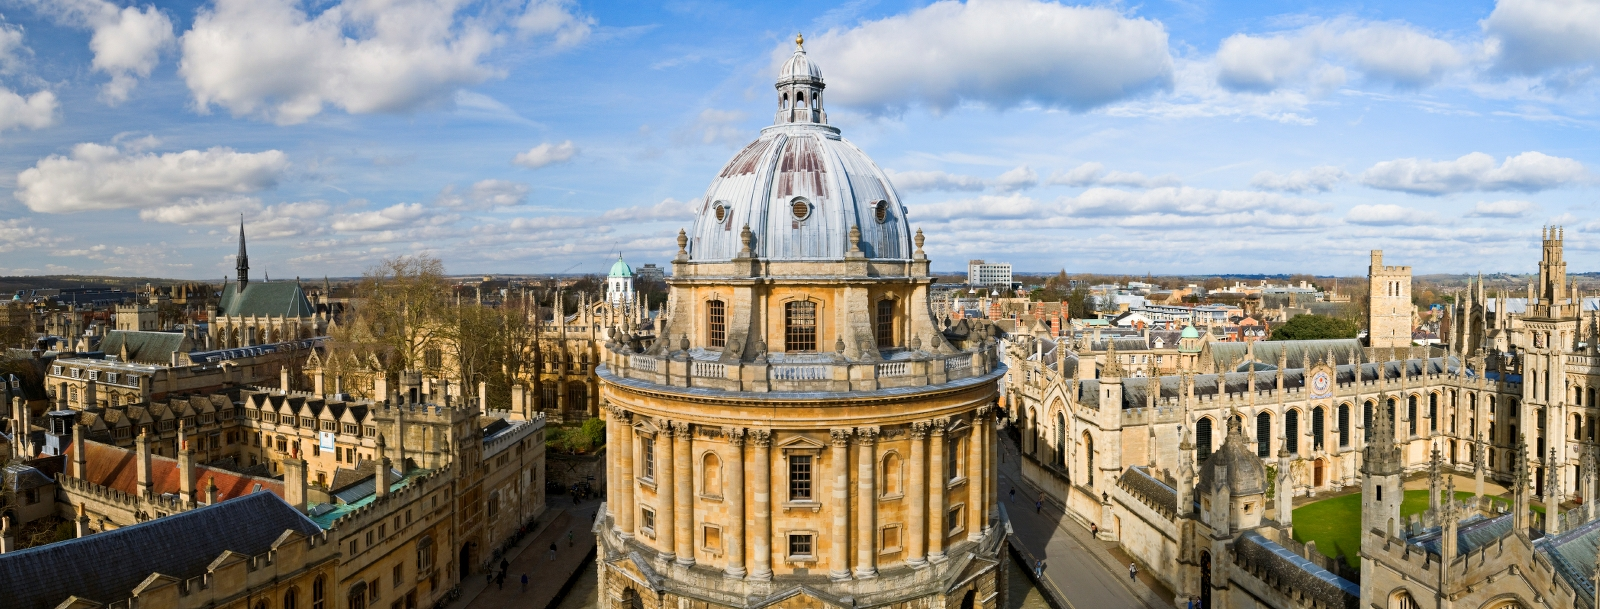 View of the city of Oxford's skyline